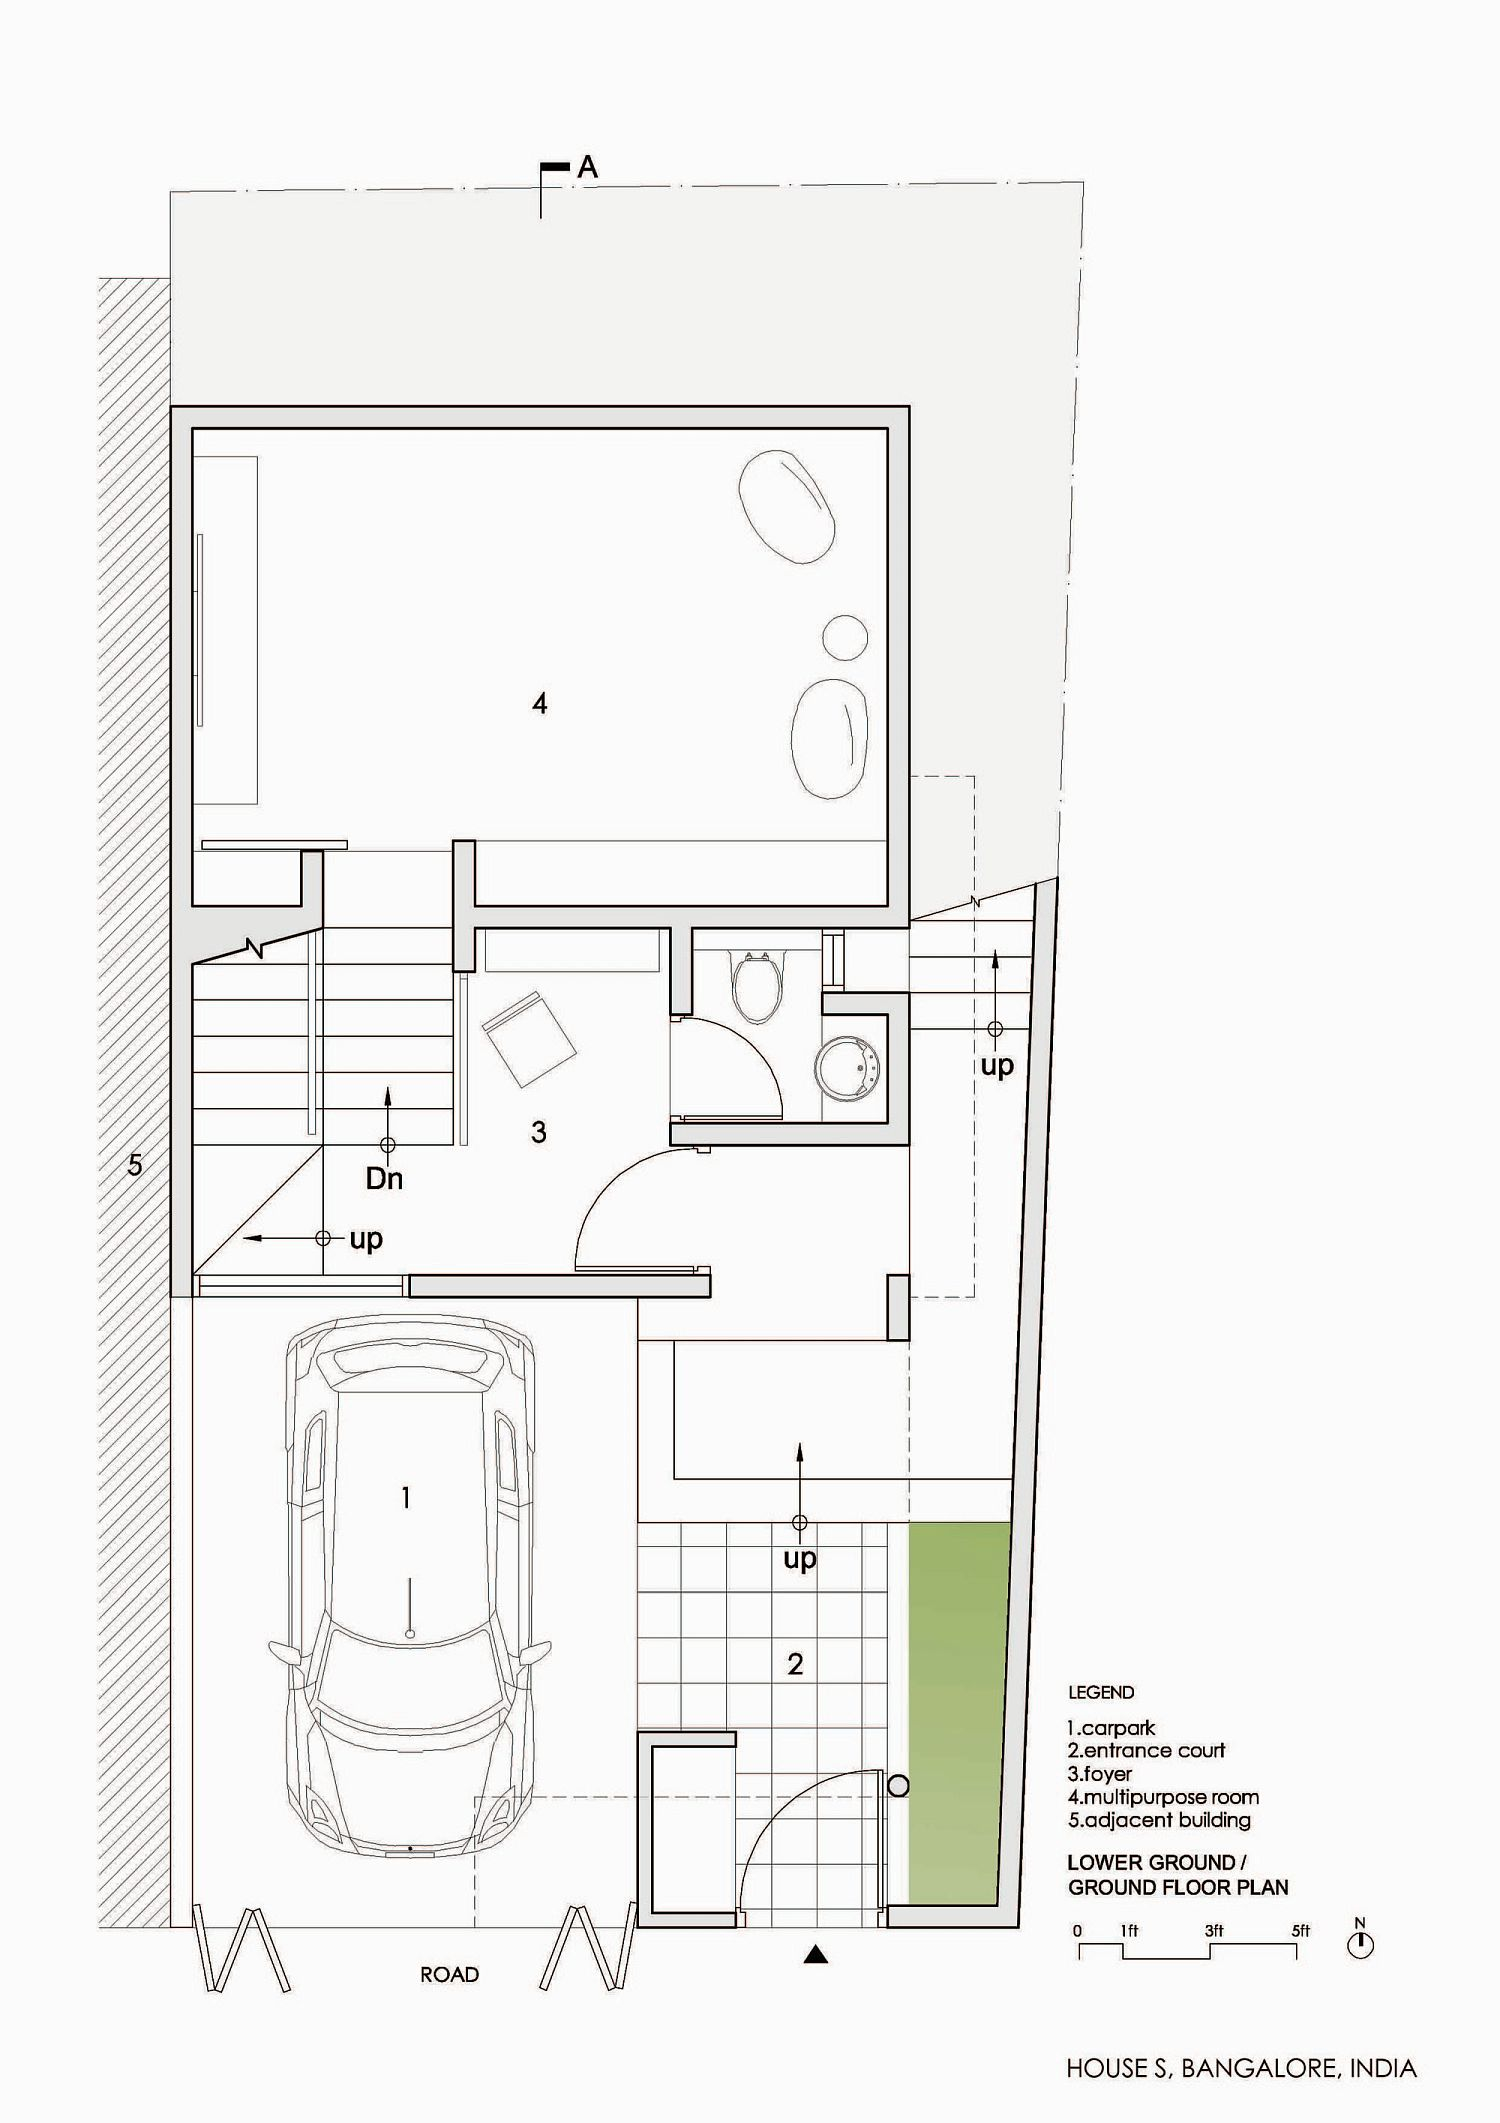 Ground floor plan of House S